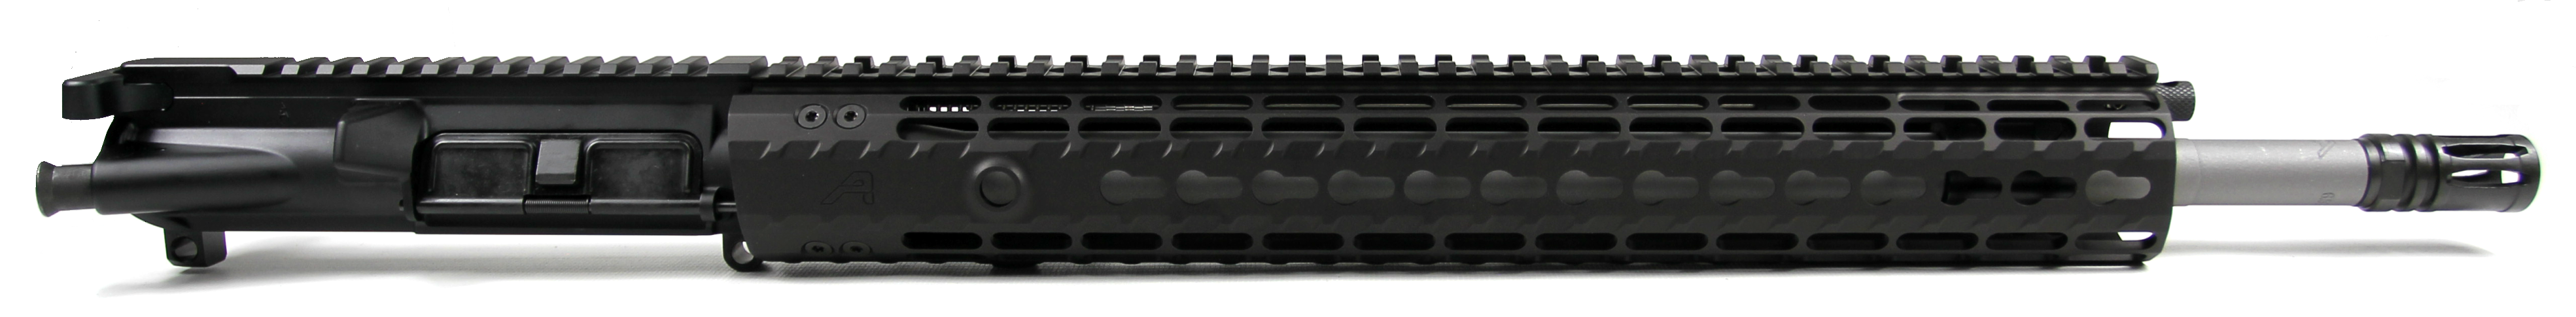 6.5 Grendel L.P.R. Rifle Length Piston Match Grade Upper with A.P. 15